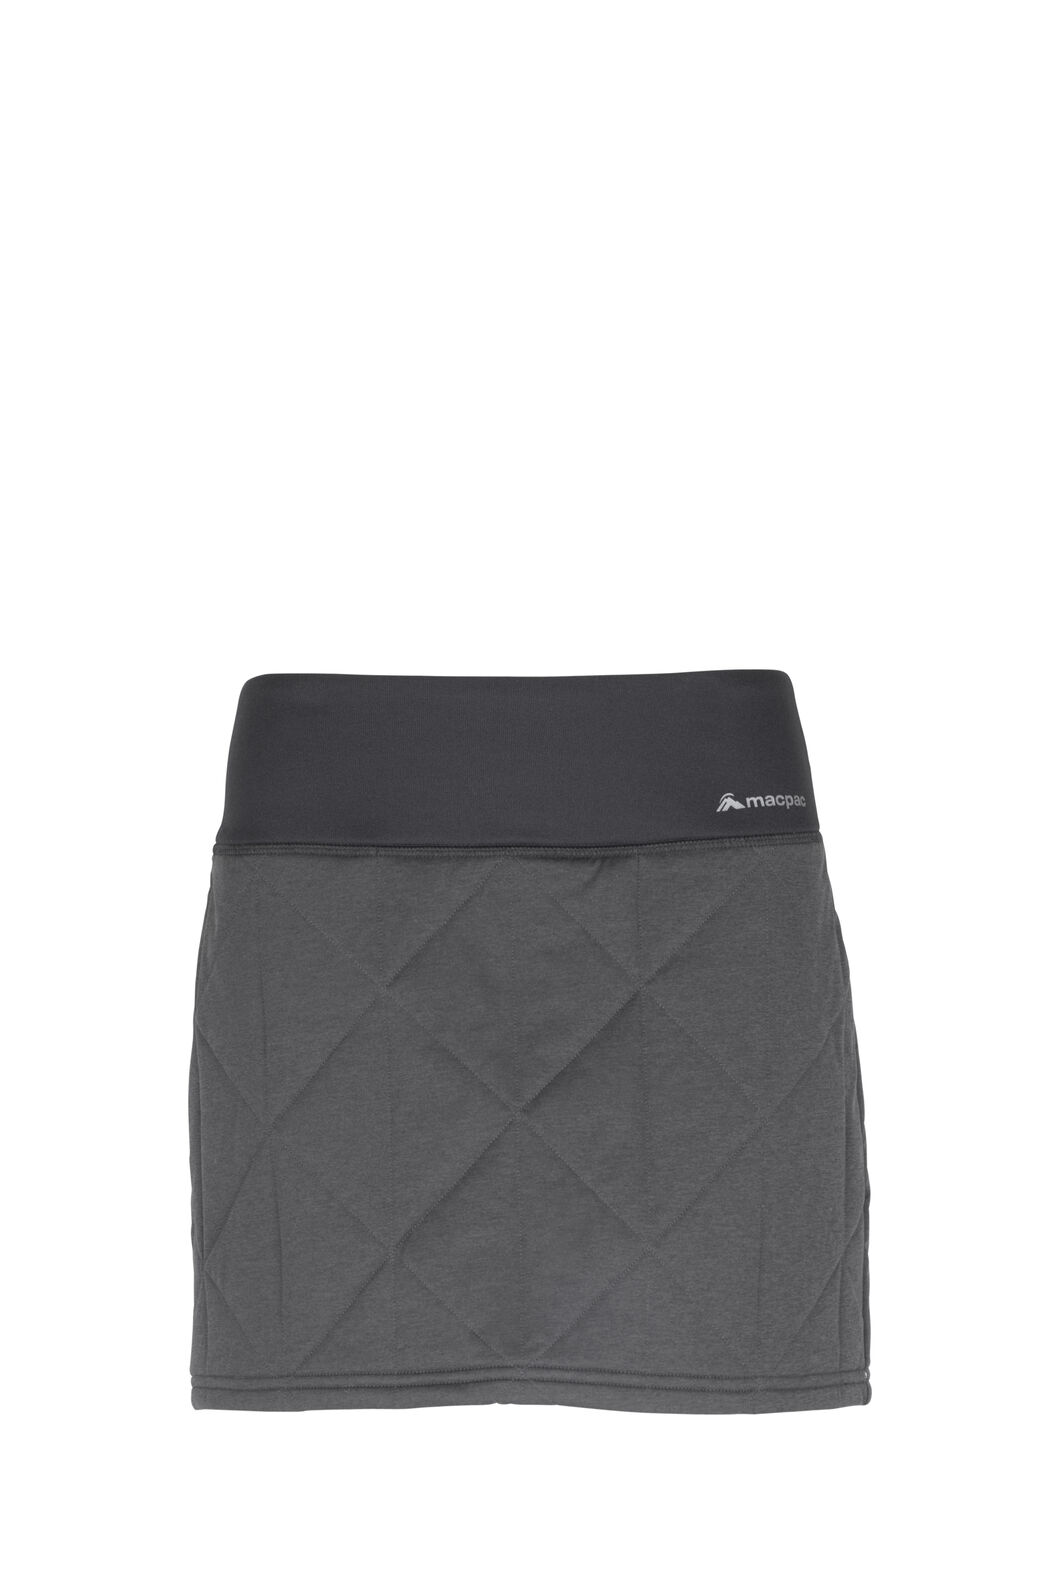 Macpac Accelerate PrimaLoft® Skirt - Women's, Black, hi-res